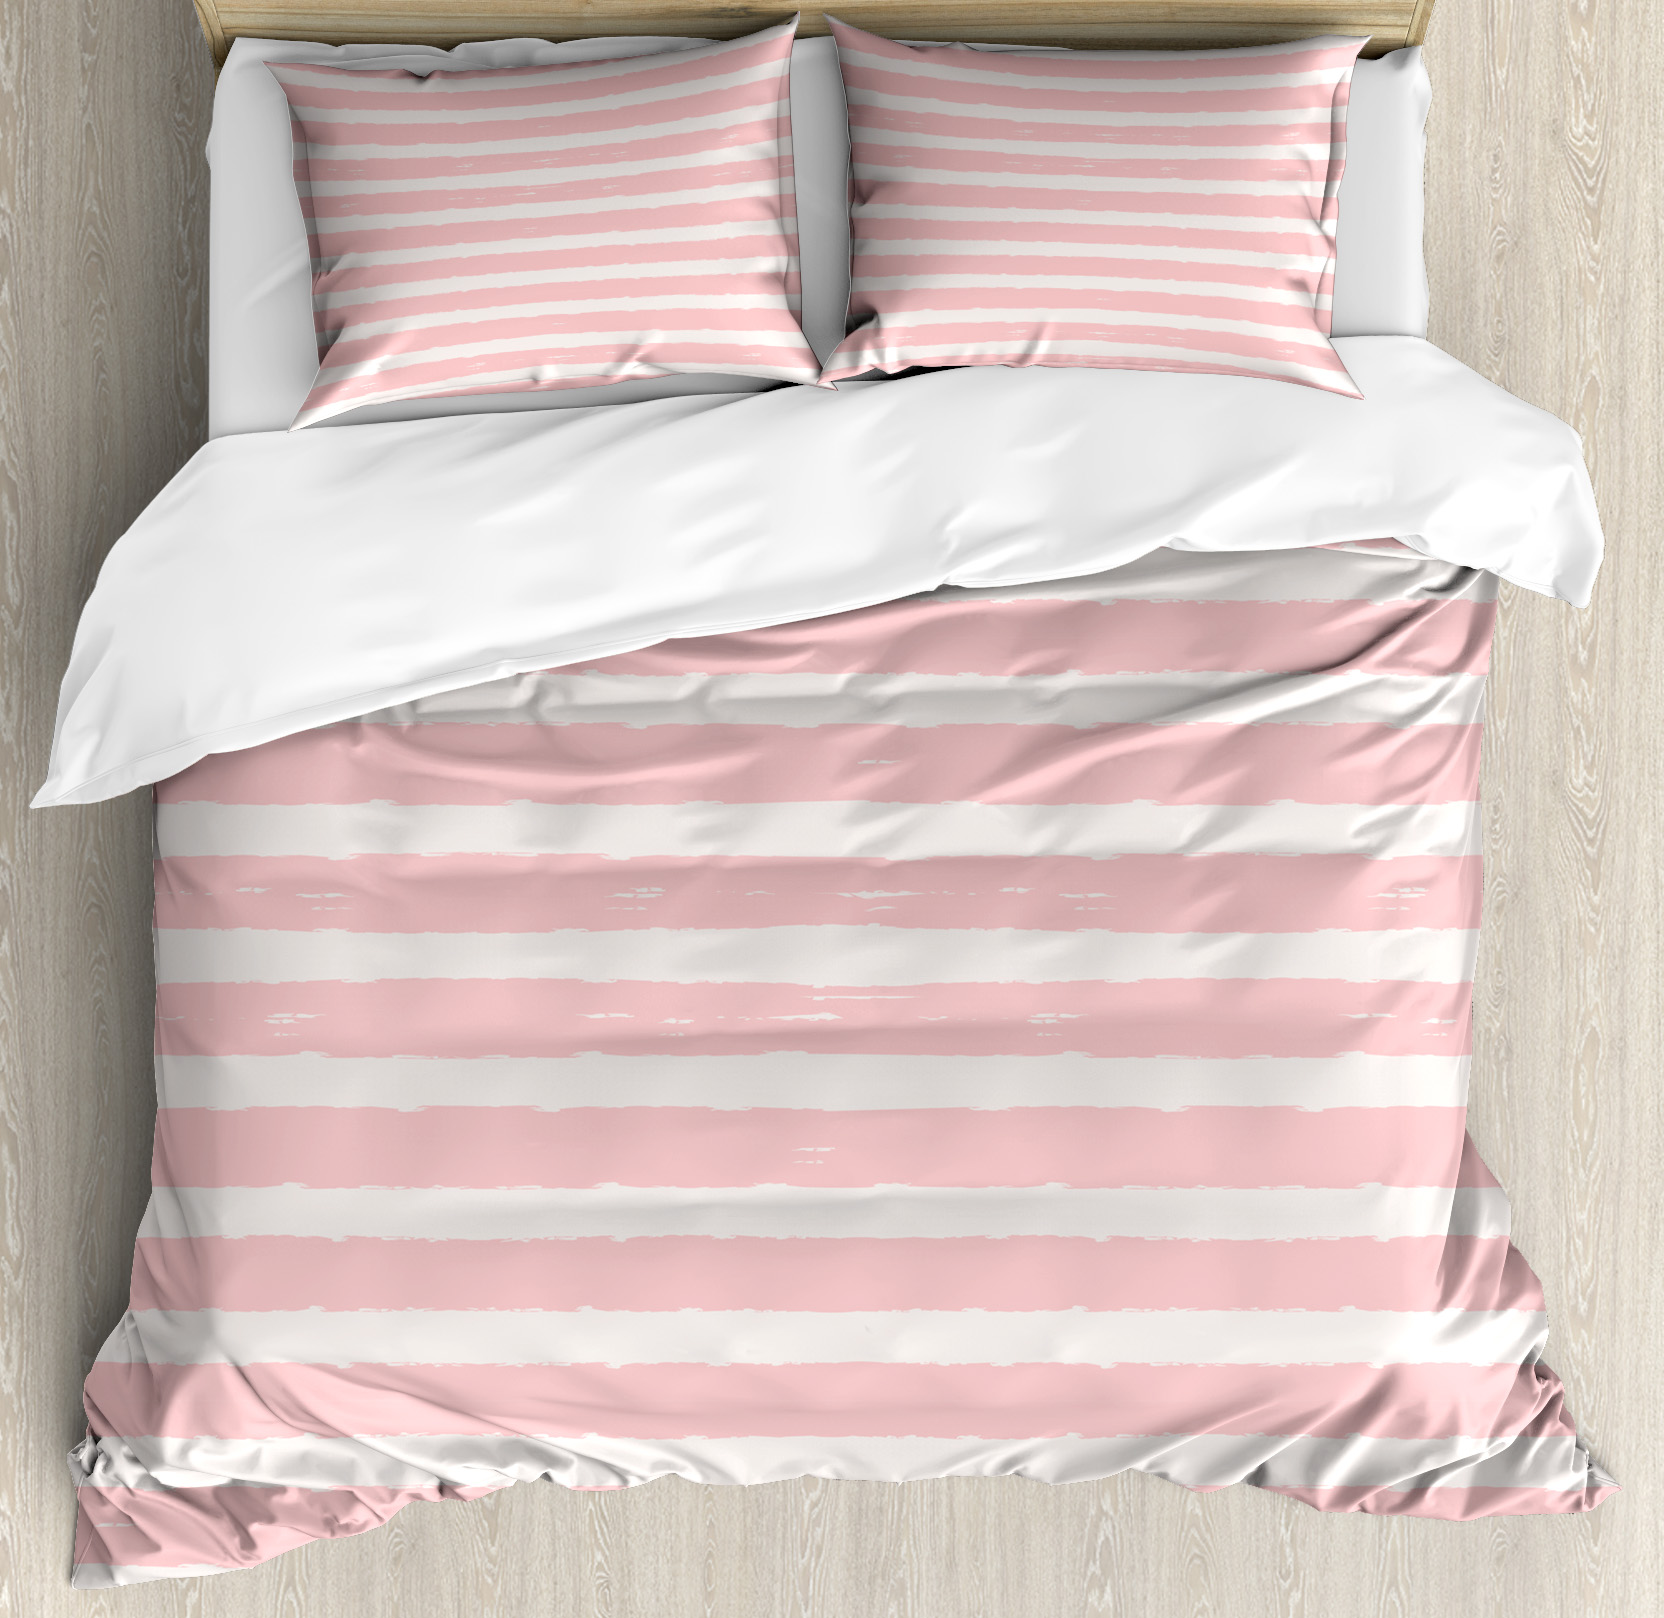 Blush Pink Quilt Cover Kids Queen Size Duvet Cover Set Paint Brushstrokes In Horizontal Direction Pastel Color Pattern For Girls Kids Decorative 3 Piece Bedding Set With 2